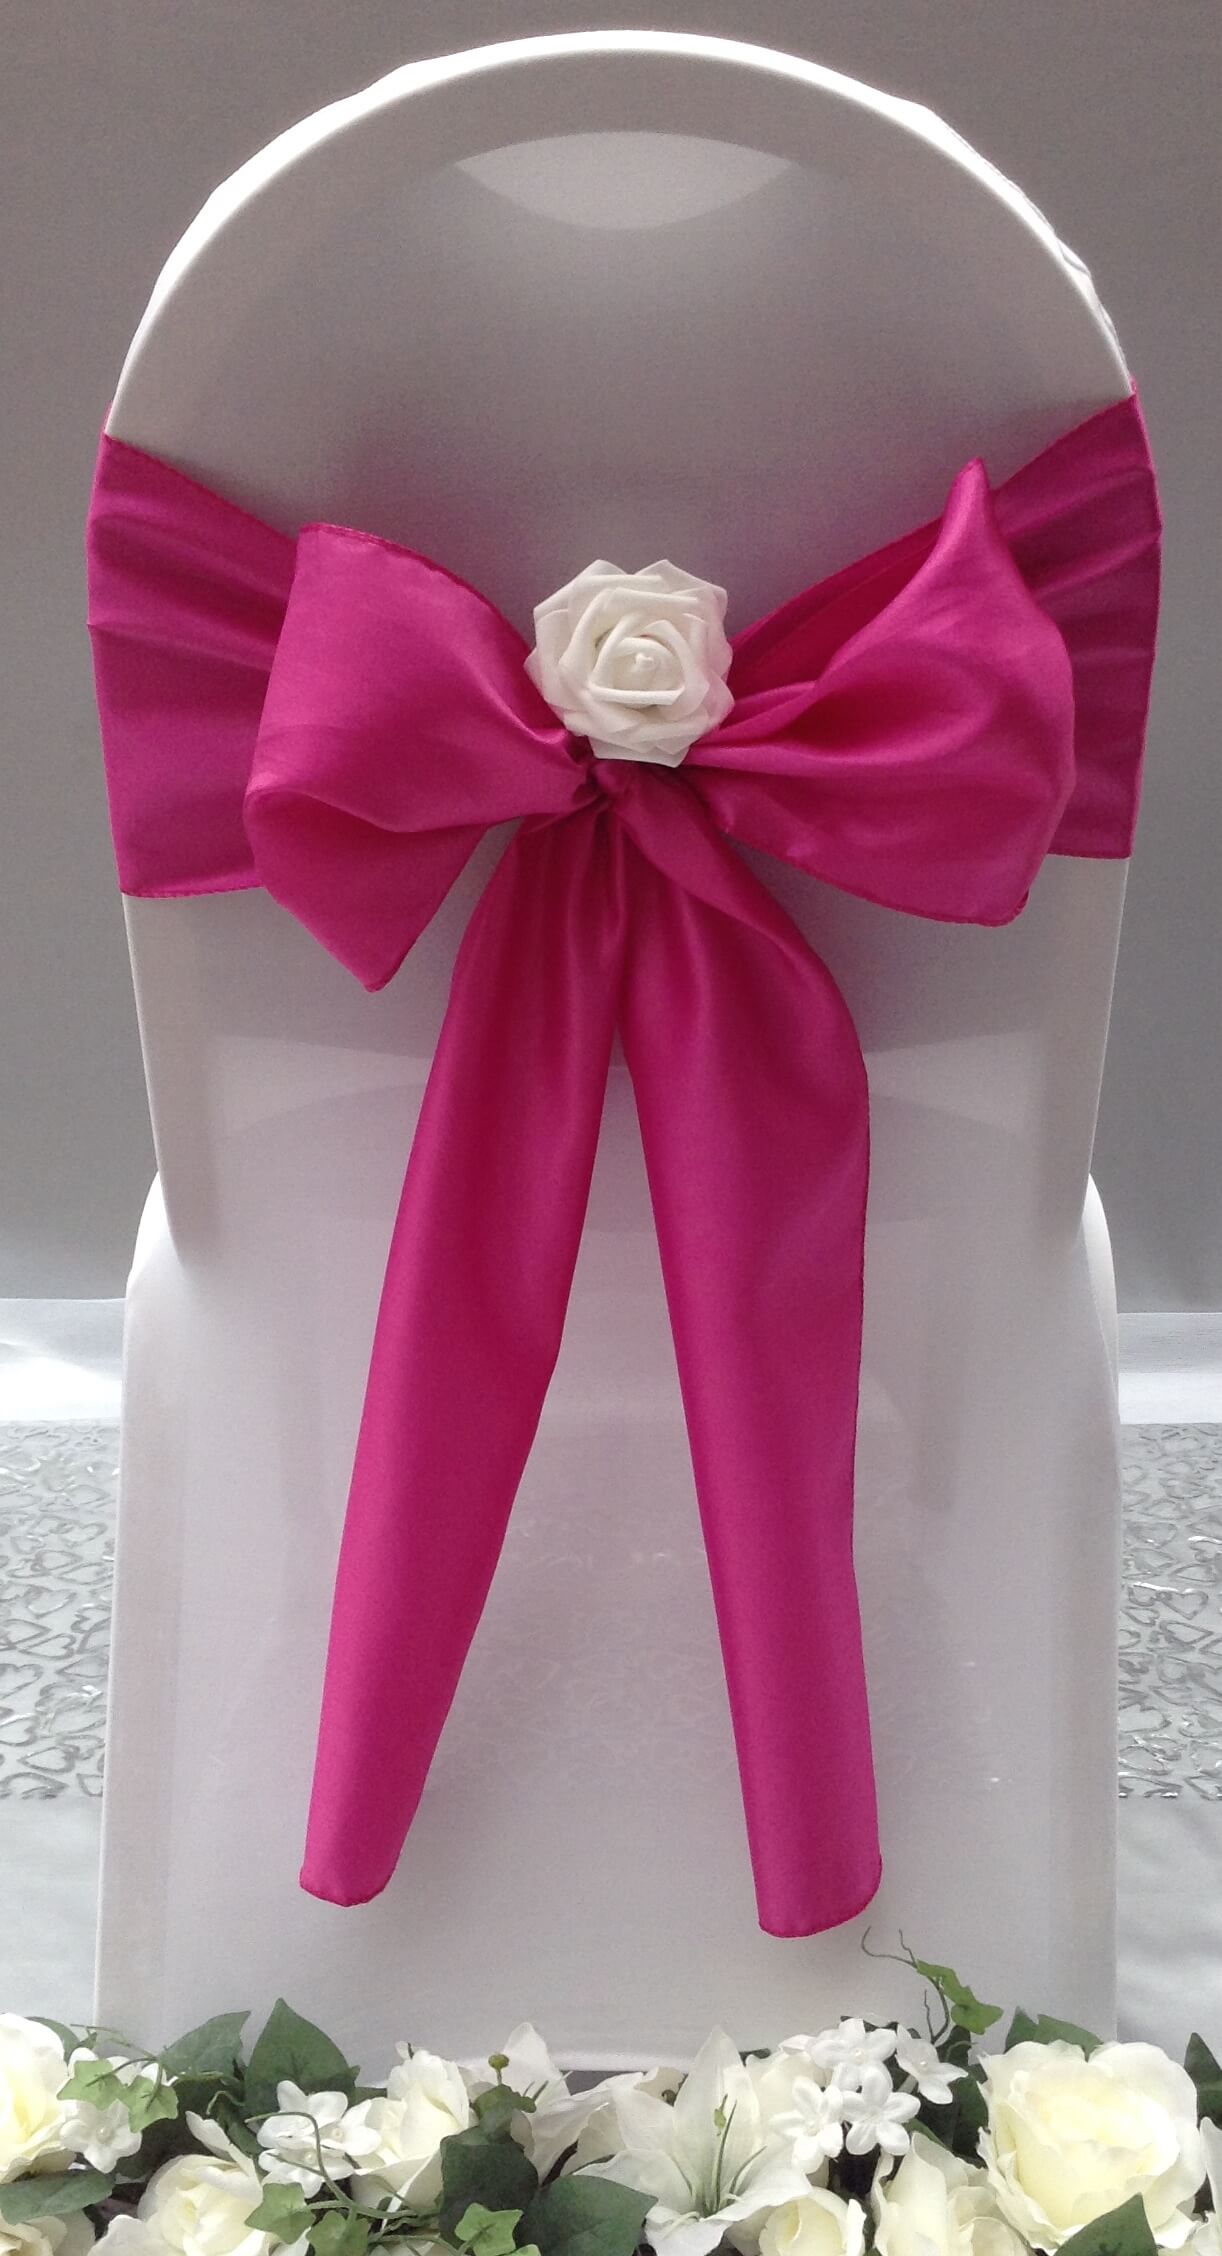 pink satin sash with white flower